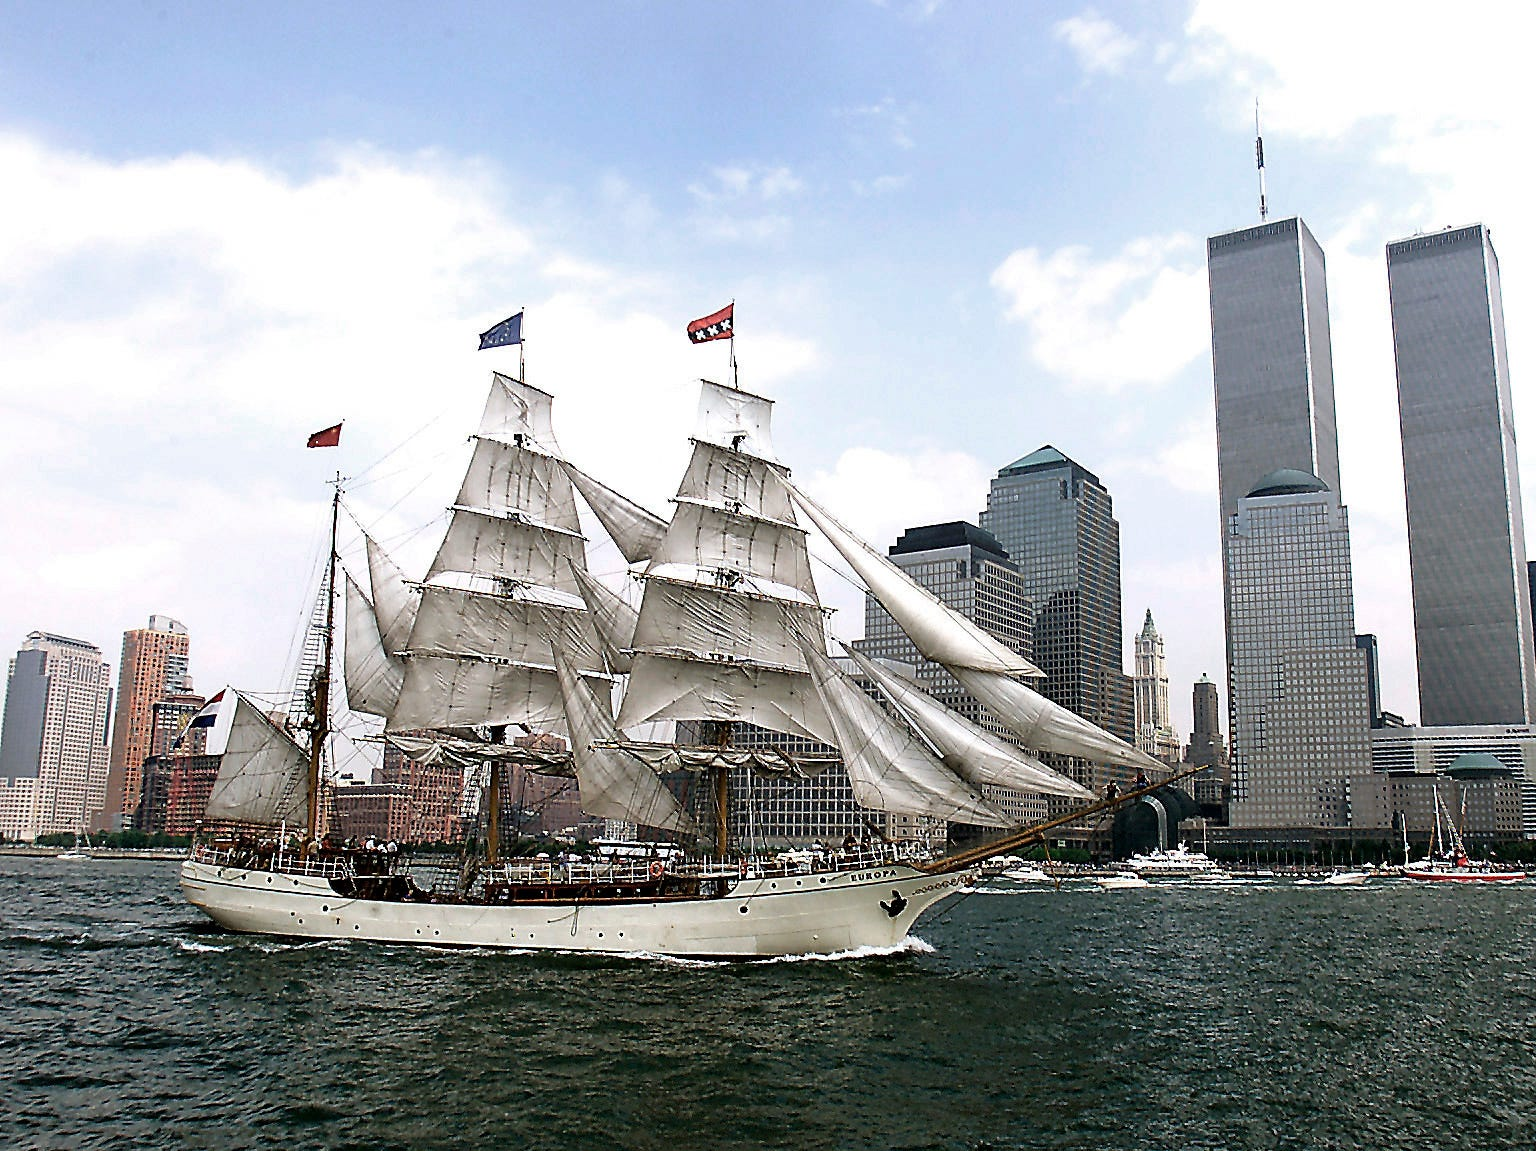 July 4, 2000--The boat Europa sails past the World Trade Centers Twin Towers on the Fourth of July during OP Sail, 2000.